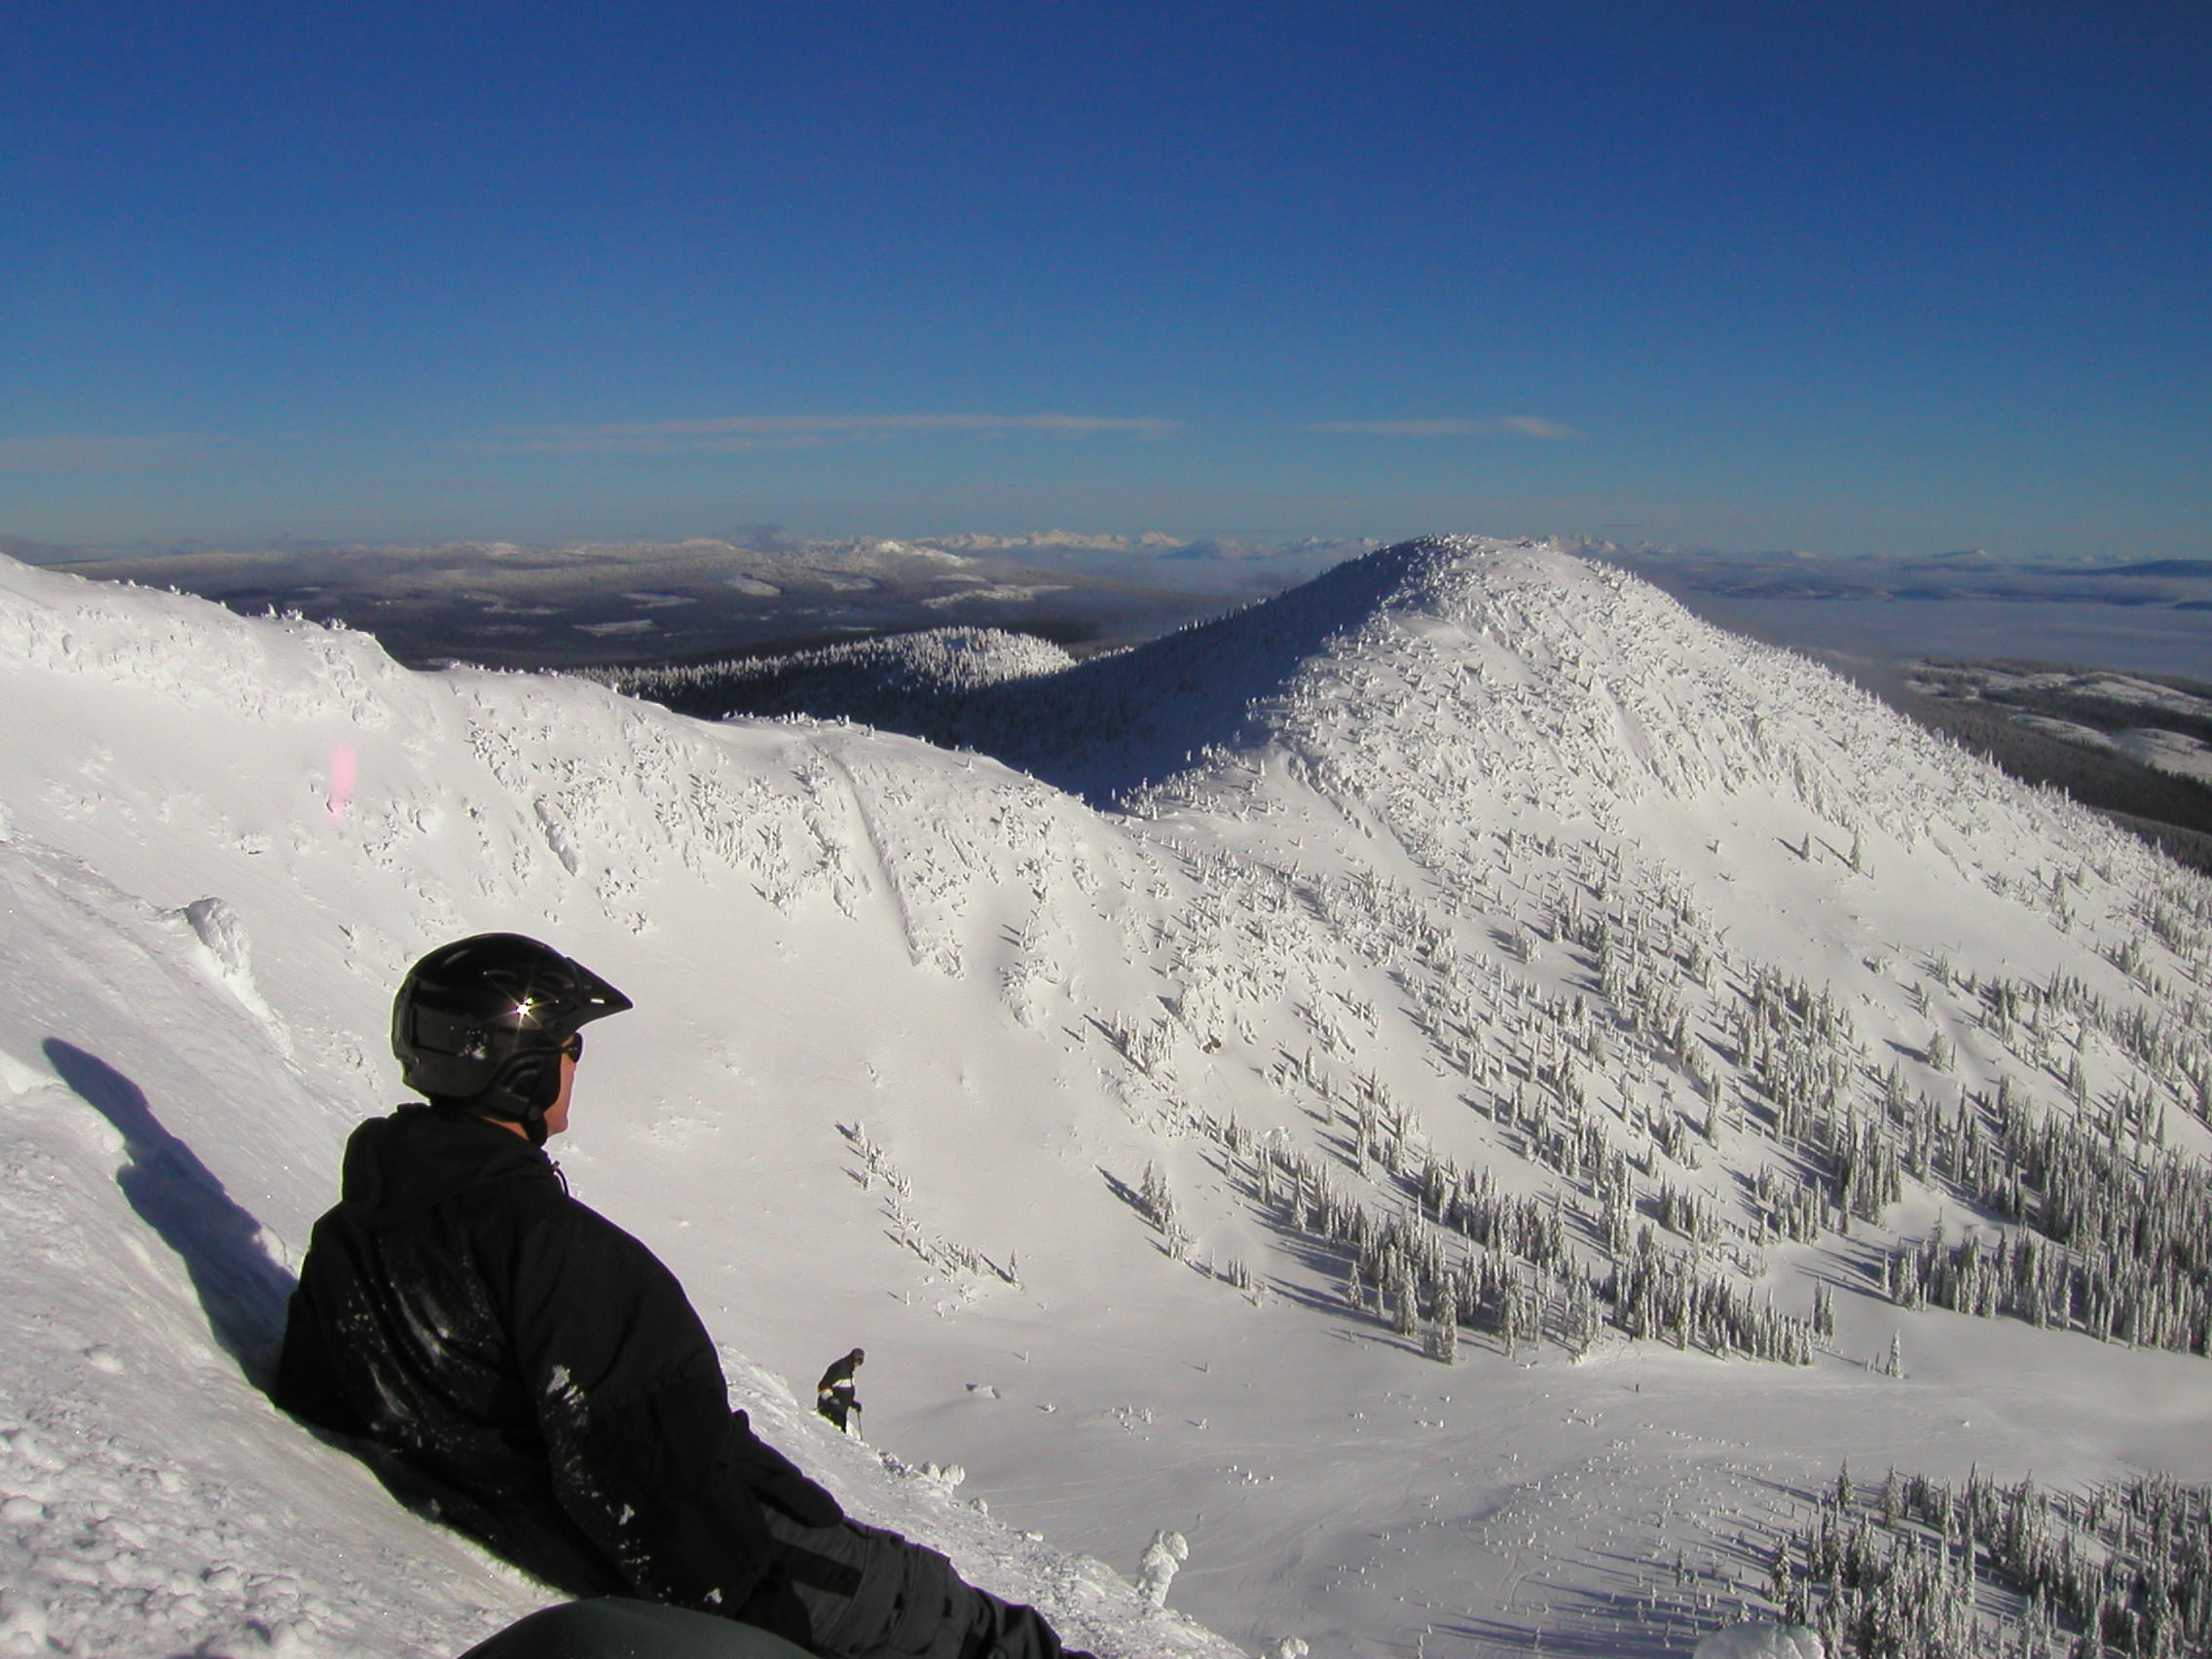 Crescendo's owner, taking in the view before tackling the Cliff Run.